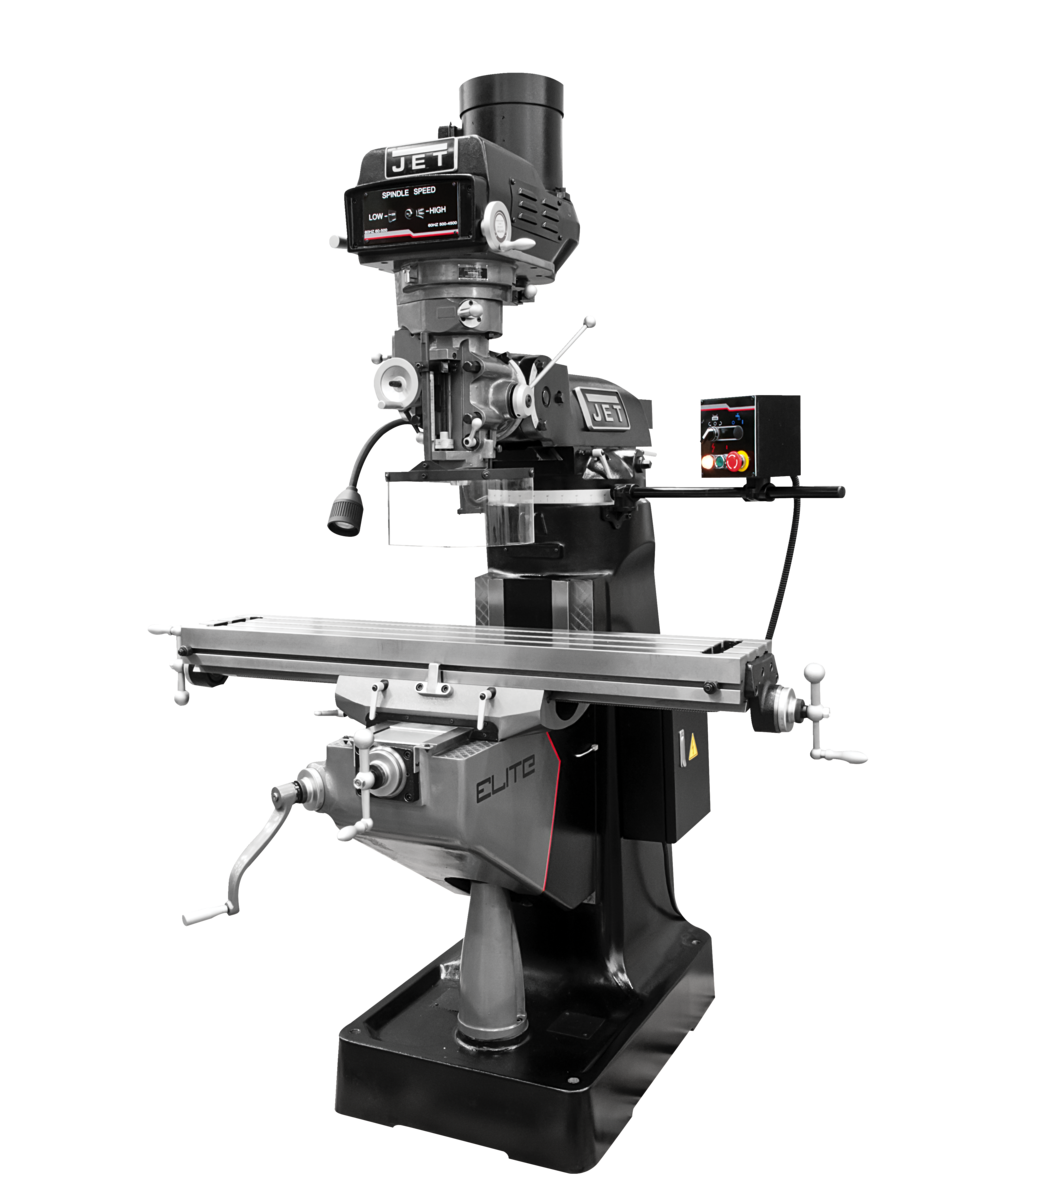 ETM-949 Mill with 3-Axis ACU-RITE 303 (Knee) DRO and Servo X-Axis Powerfeed and USA Air Powered Draw Bar